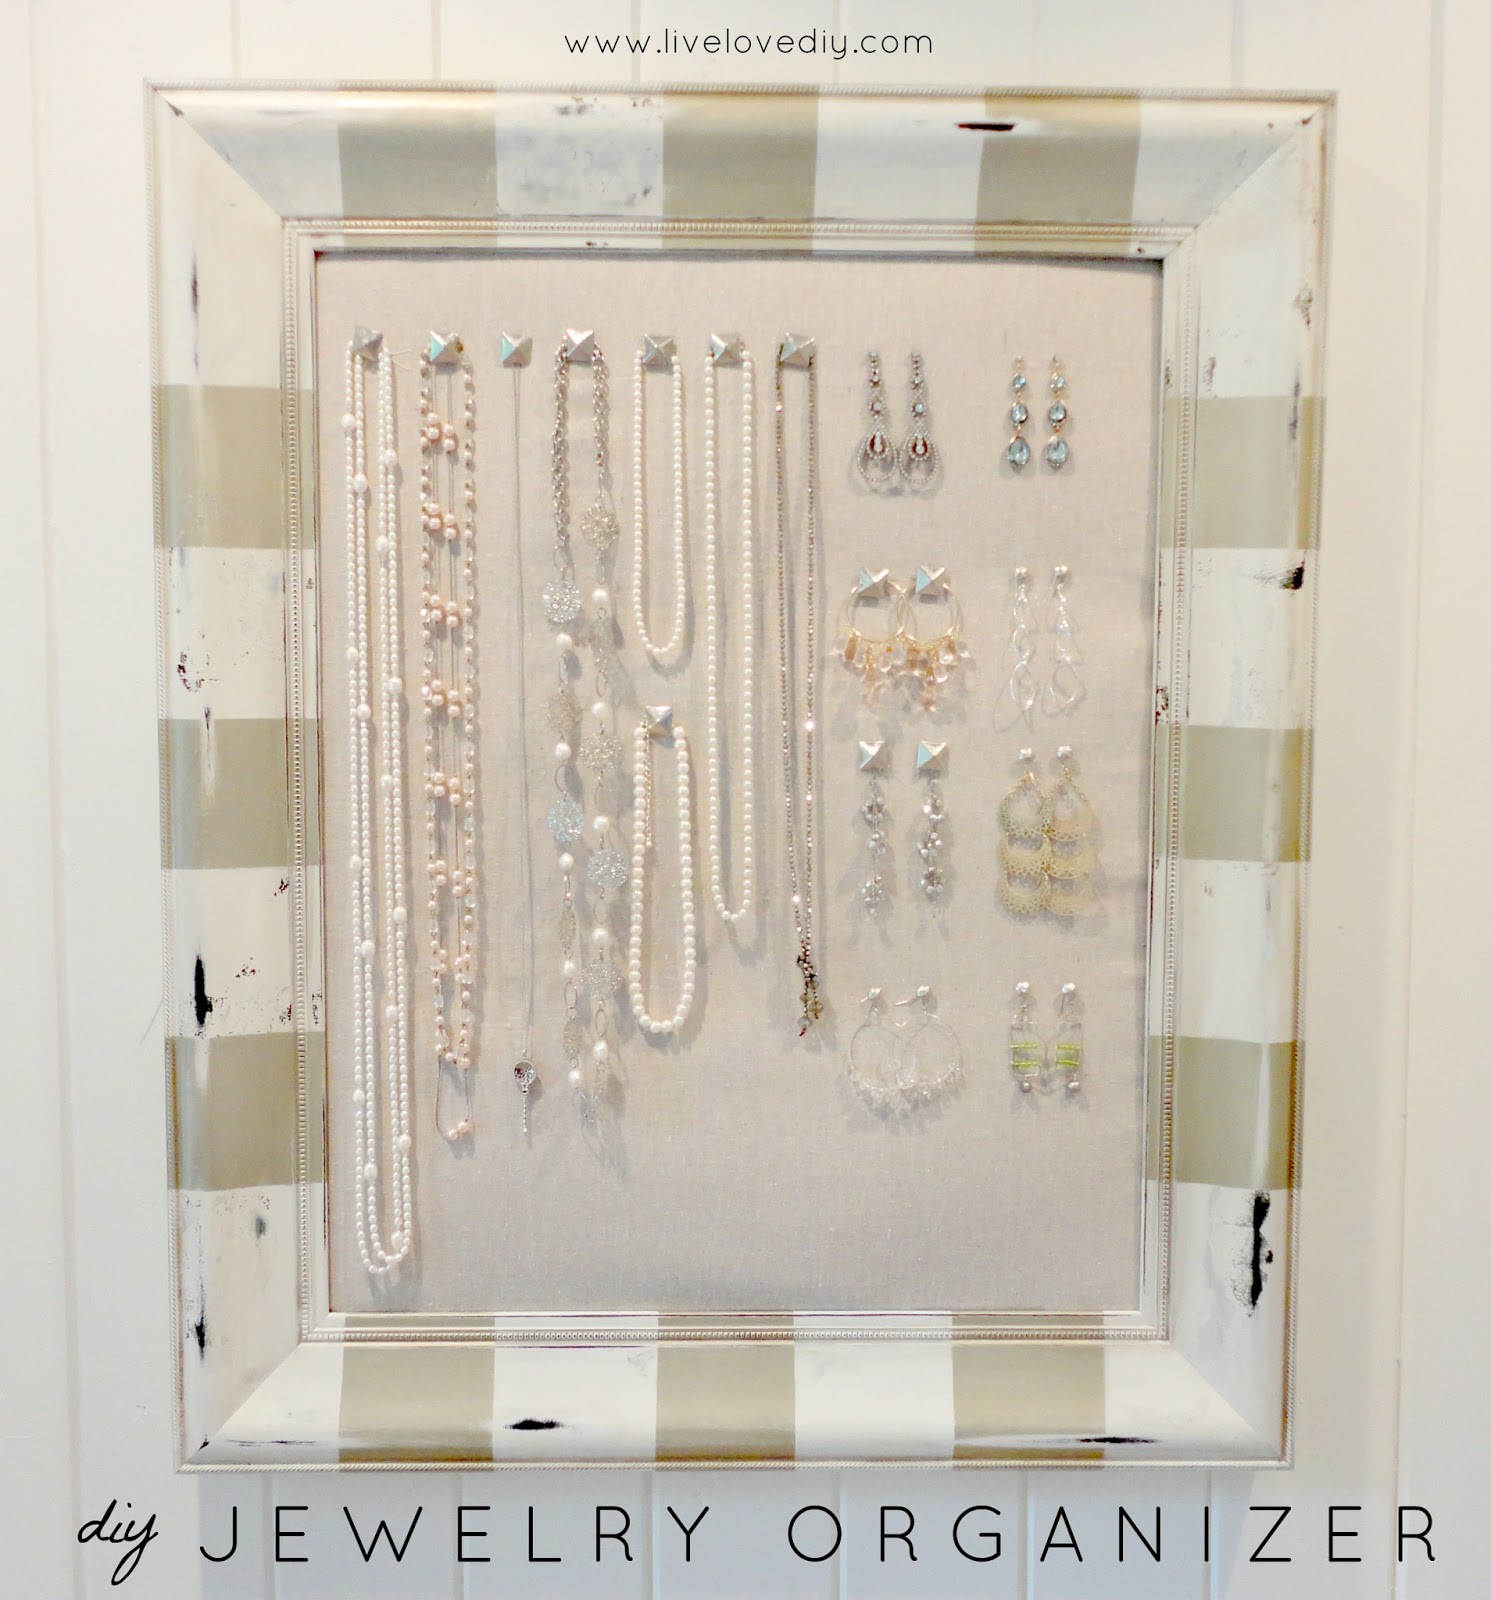 LiveLoveDIY: DIY Corkboard Jewelry Organizer